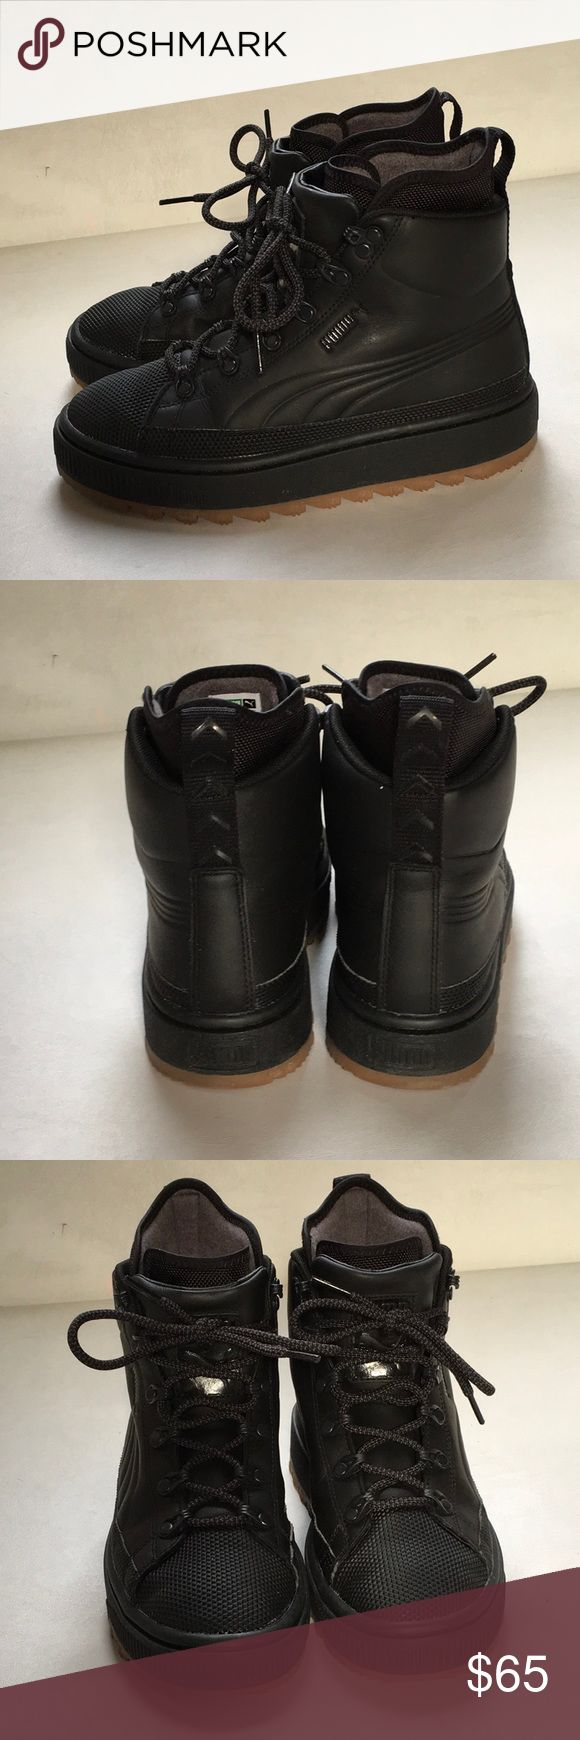 puma ren boots Puma ren boots U.K. 3, eur 36, us 4.5 kids kids do, like a 6ish ladies. Super cute lines water resistant boots! I love these, but they are just too big for me! Puma Shoes Sneakers